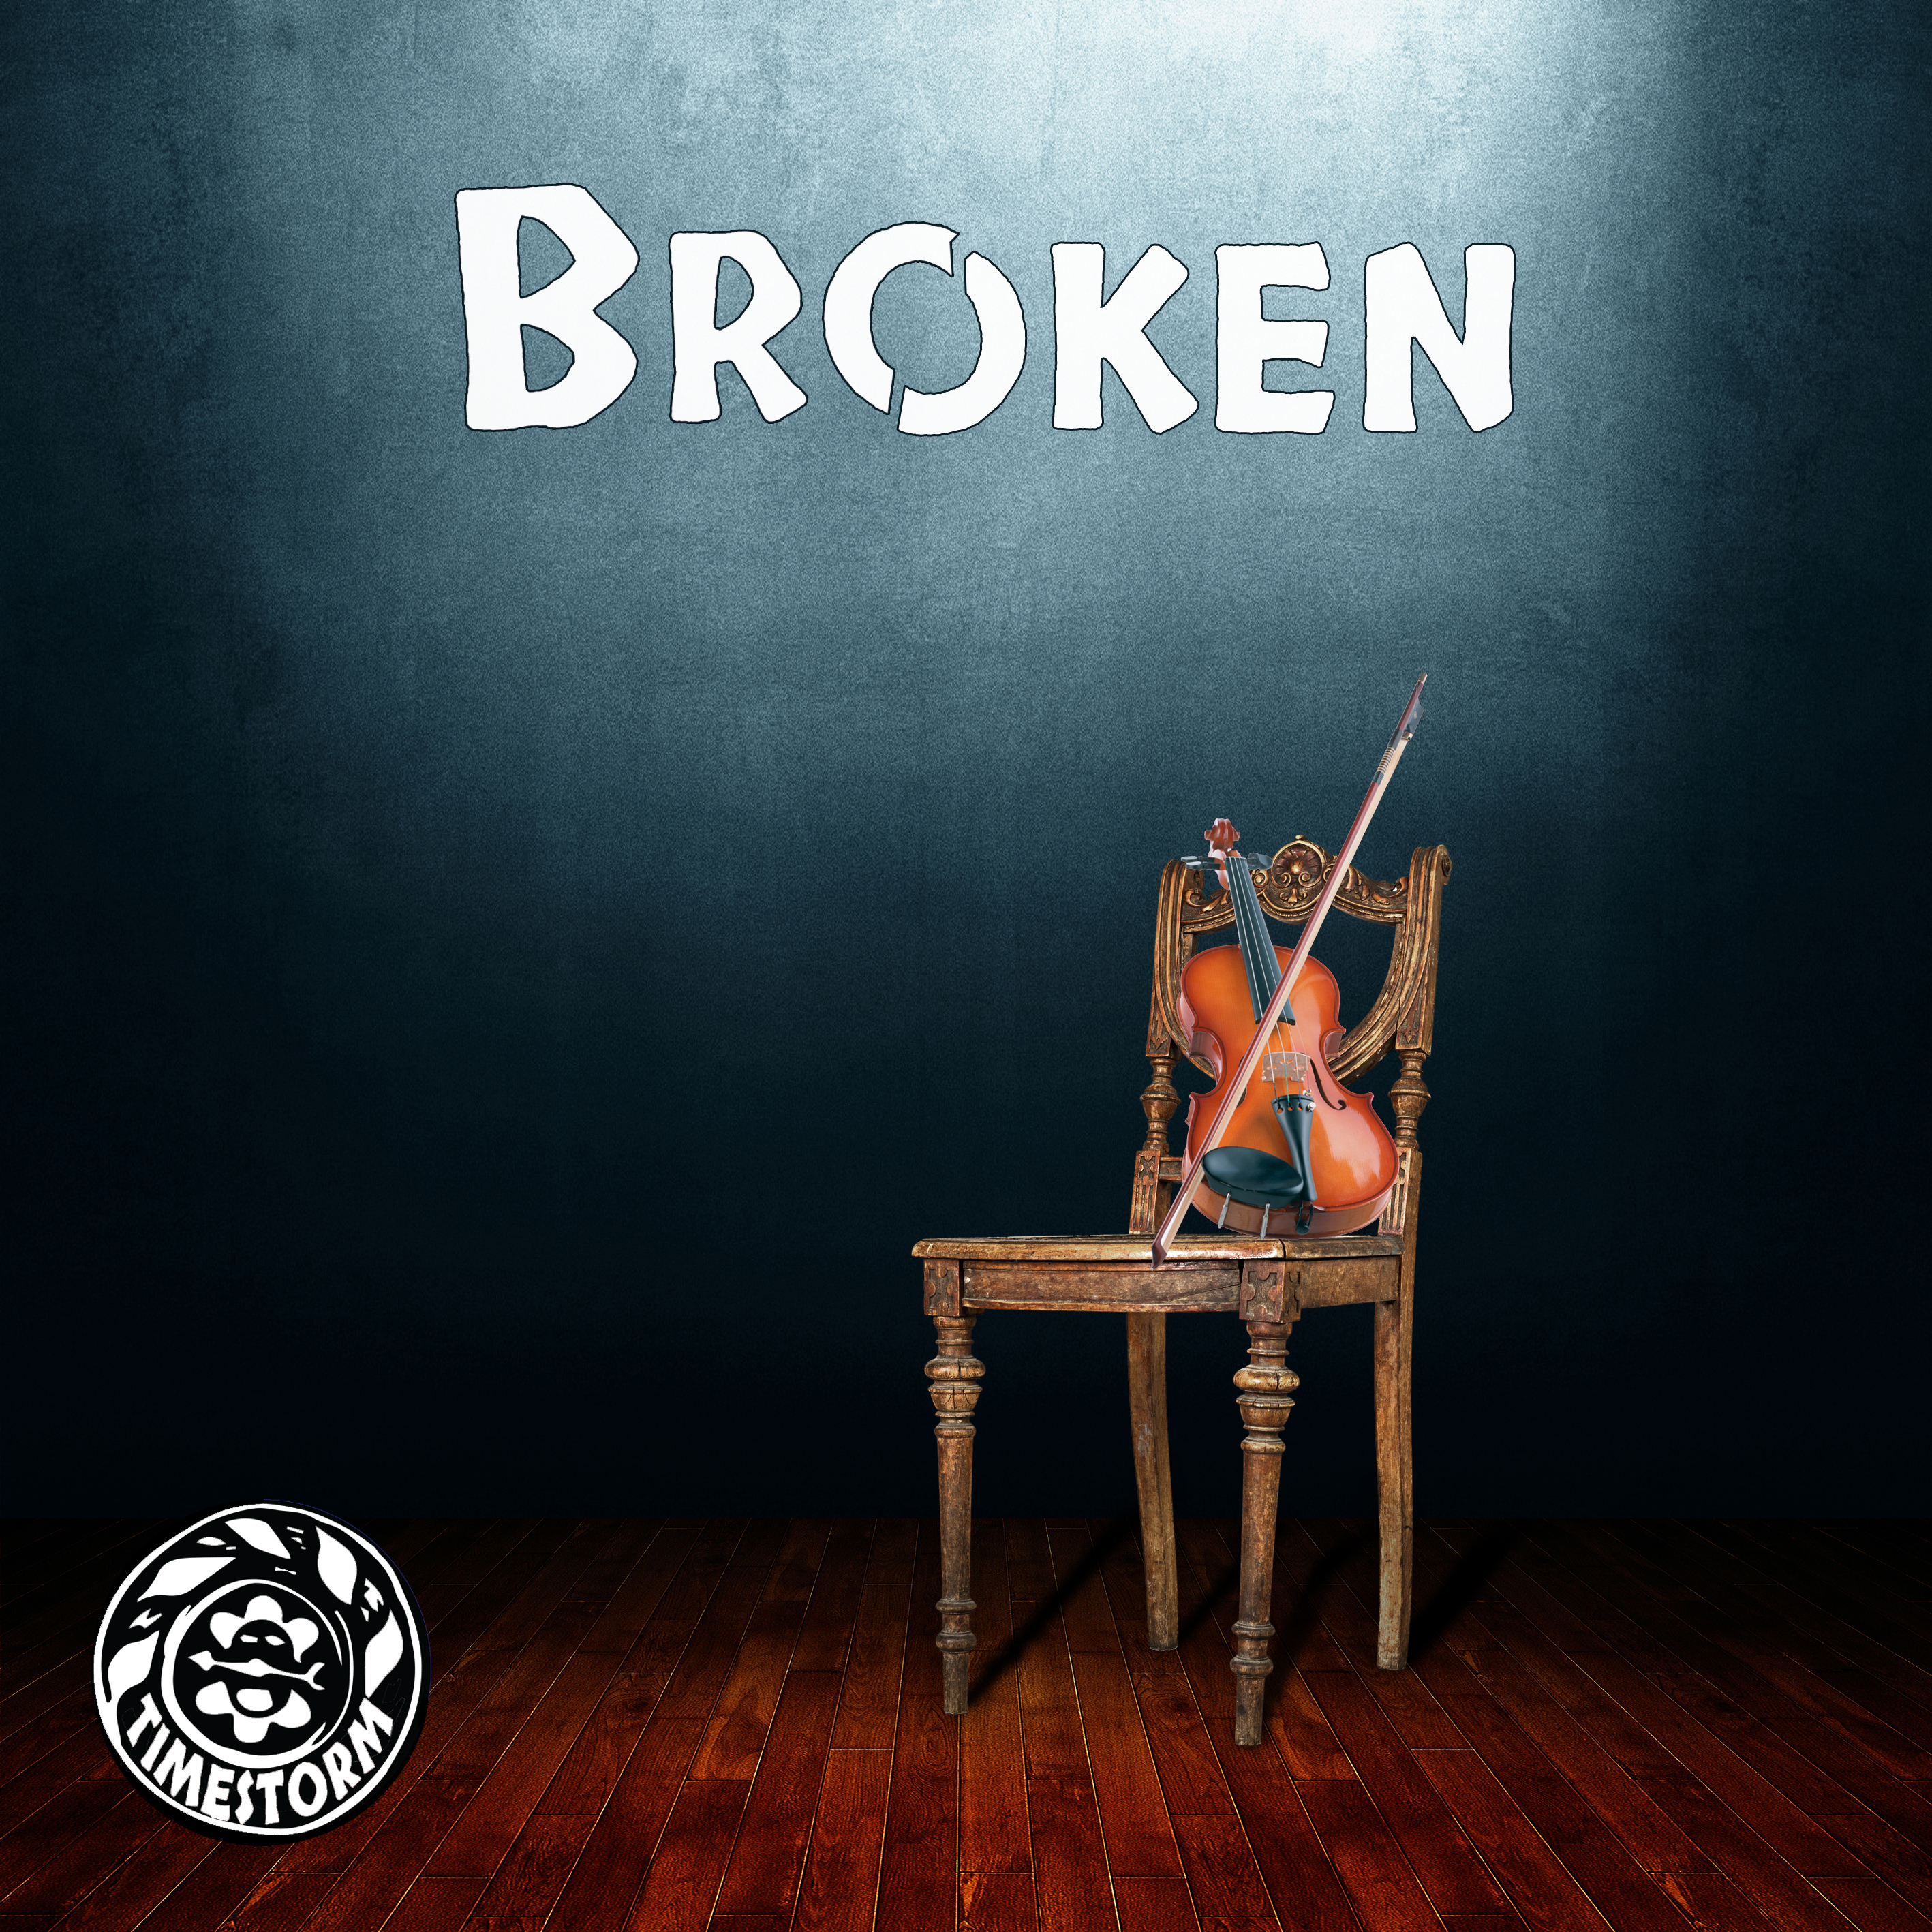 Episode 7: Broken